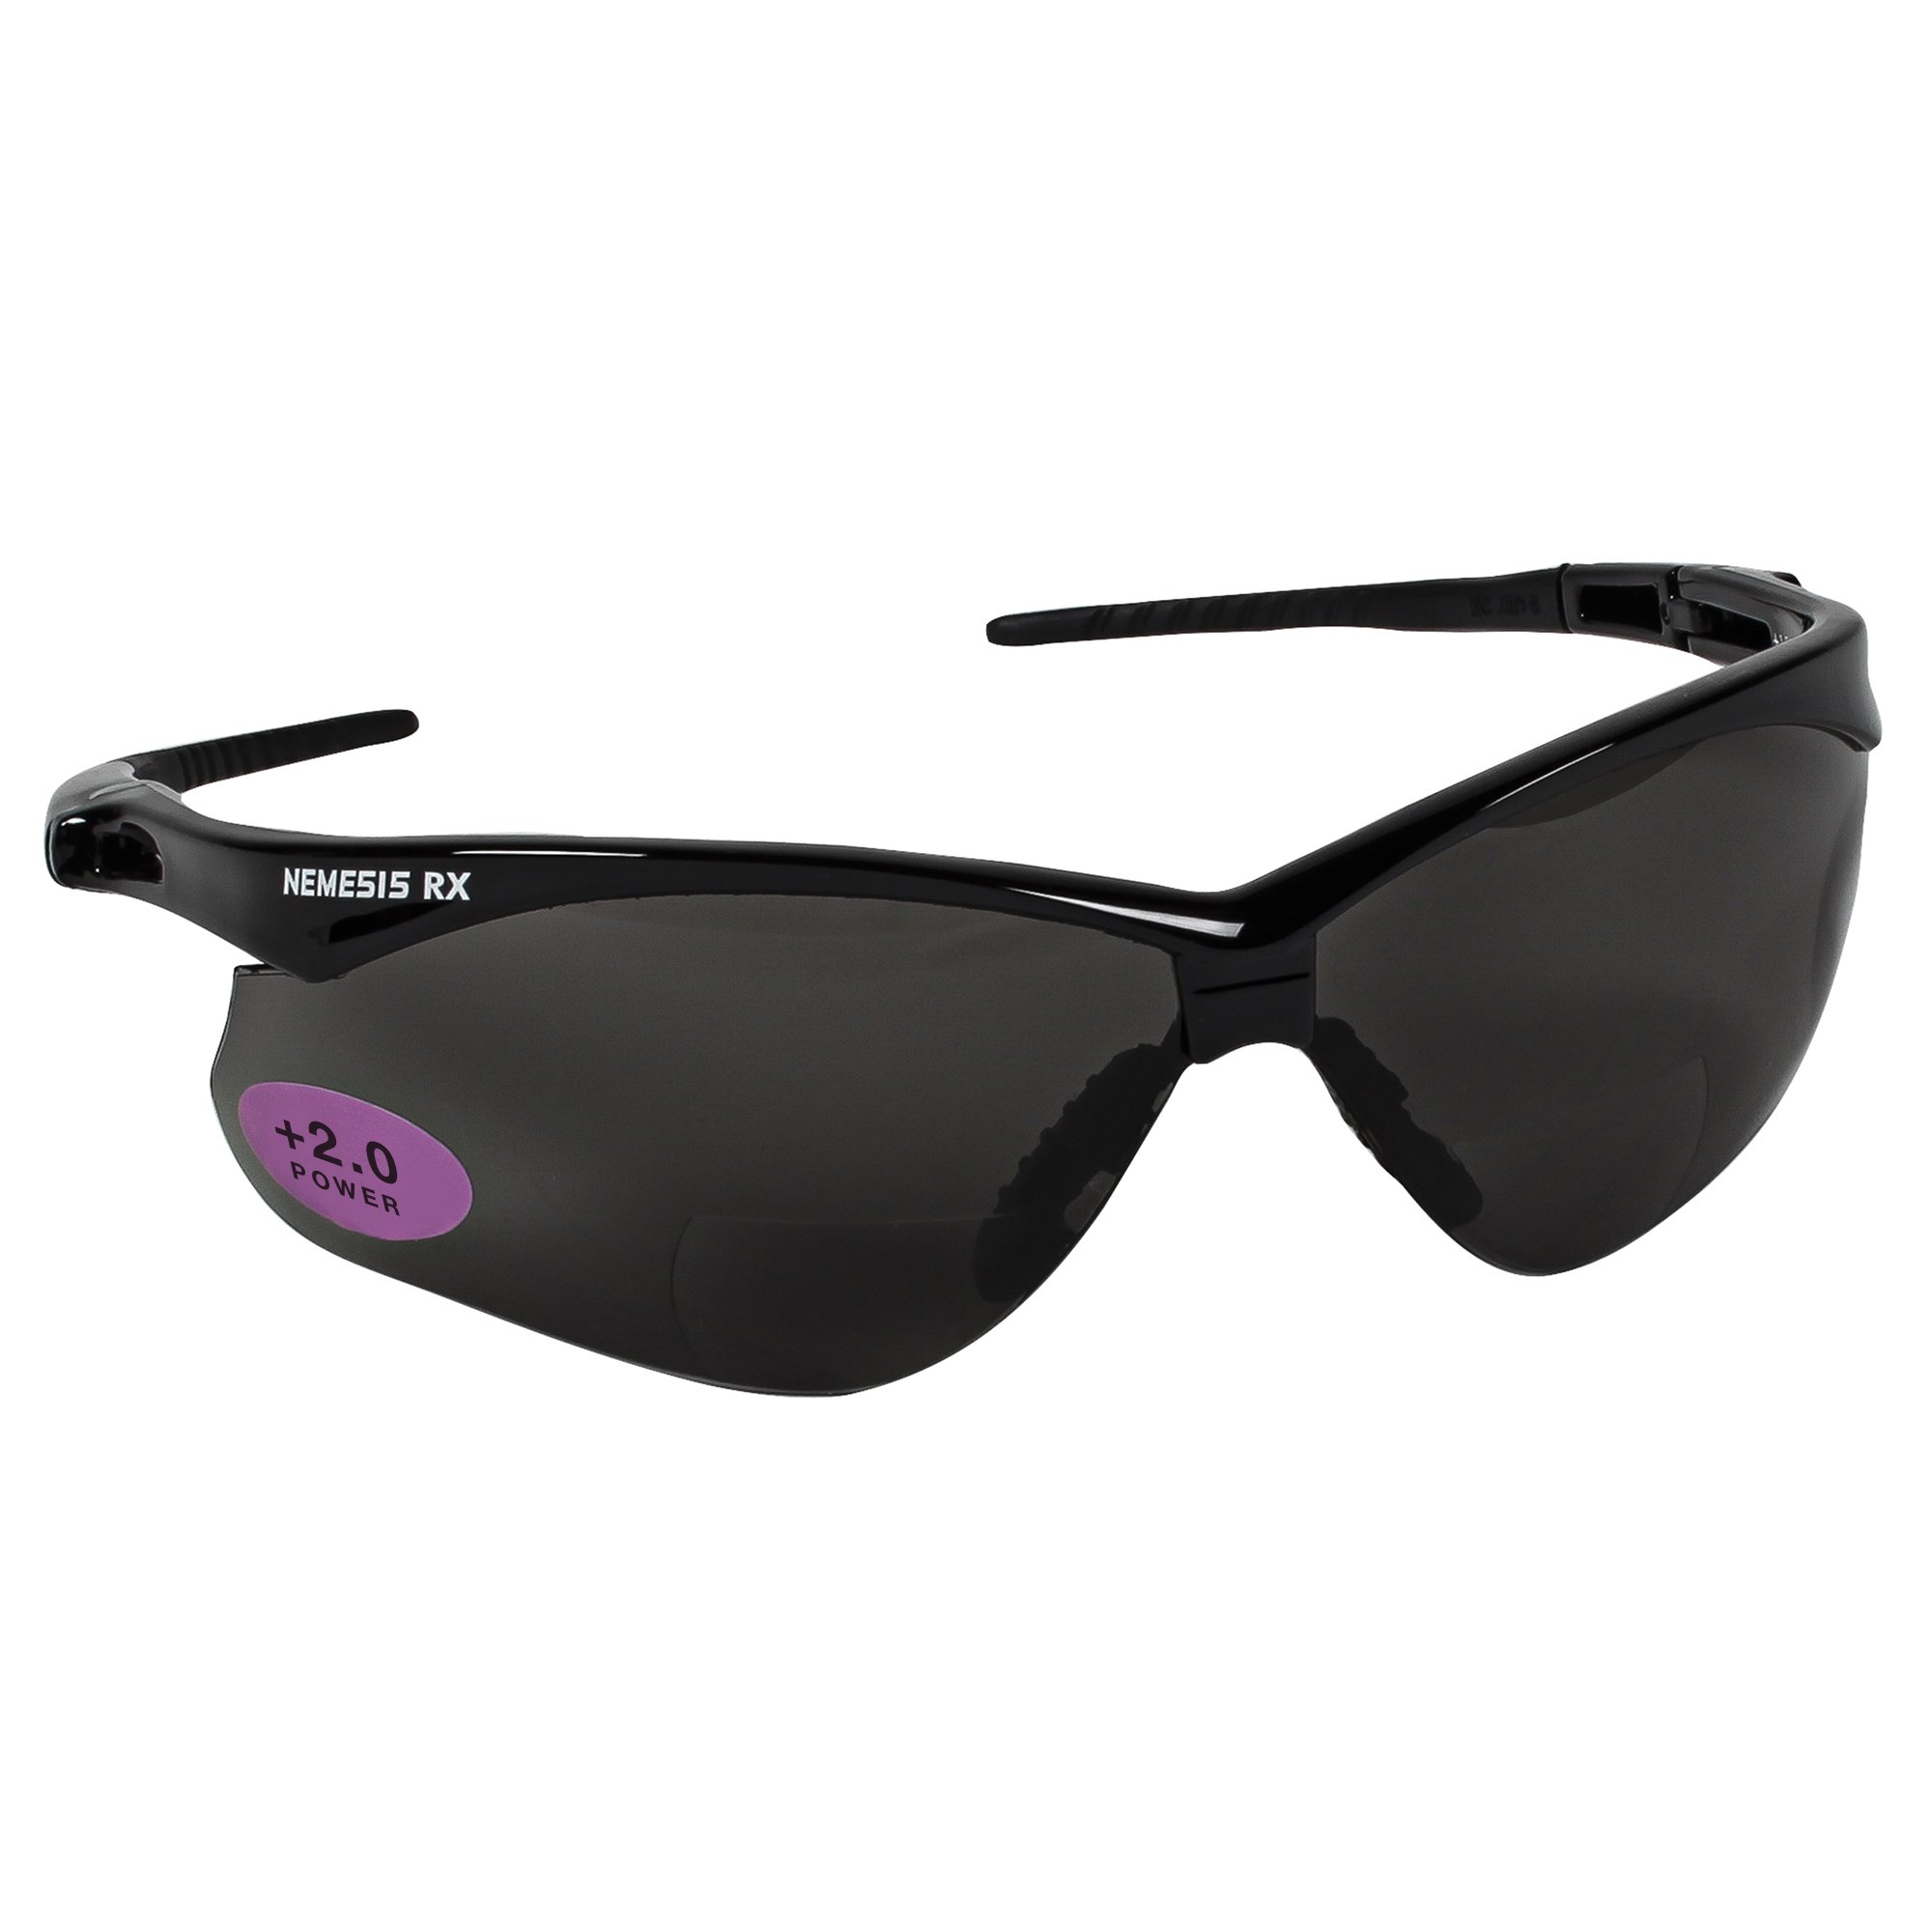 Jackson Safety V60 Nemesis Vision Correction Safety Sunglasses (22518), Smoke Readers with +2.0 Diopters, Black Frame, 6 Pairs/Case